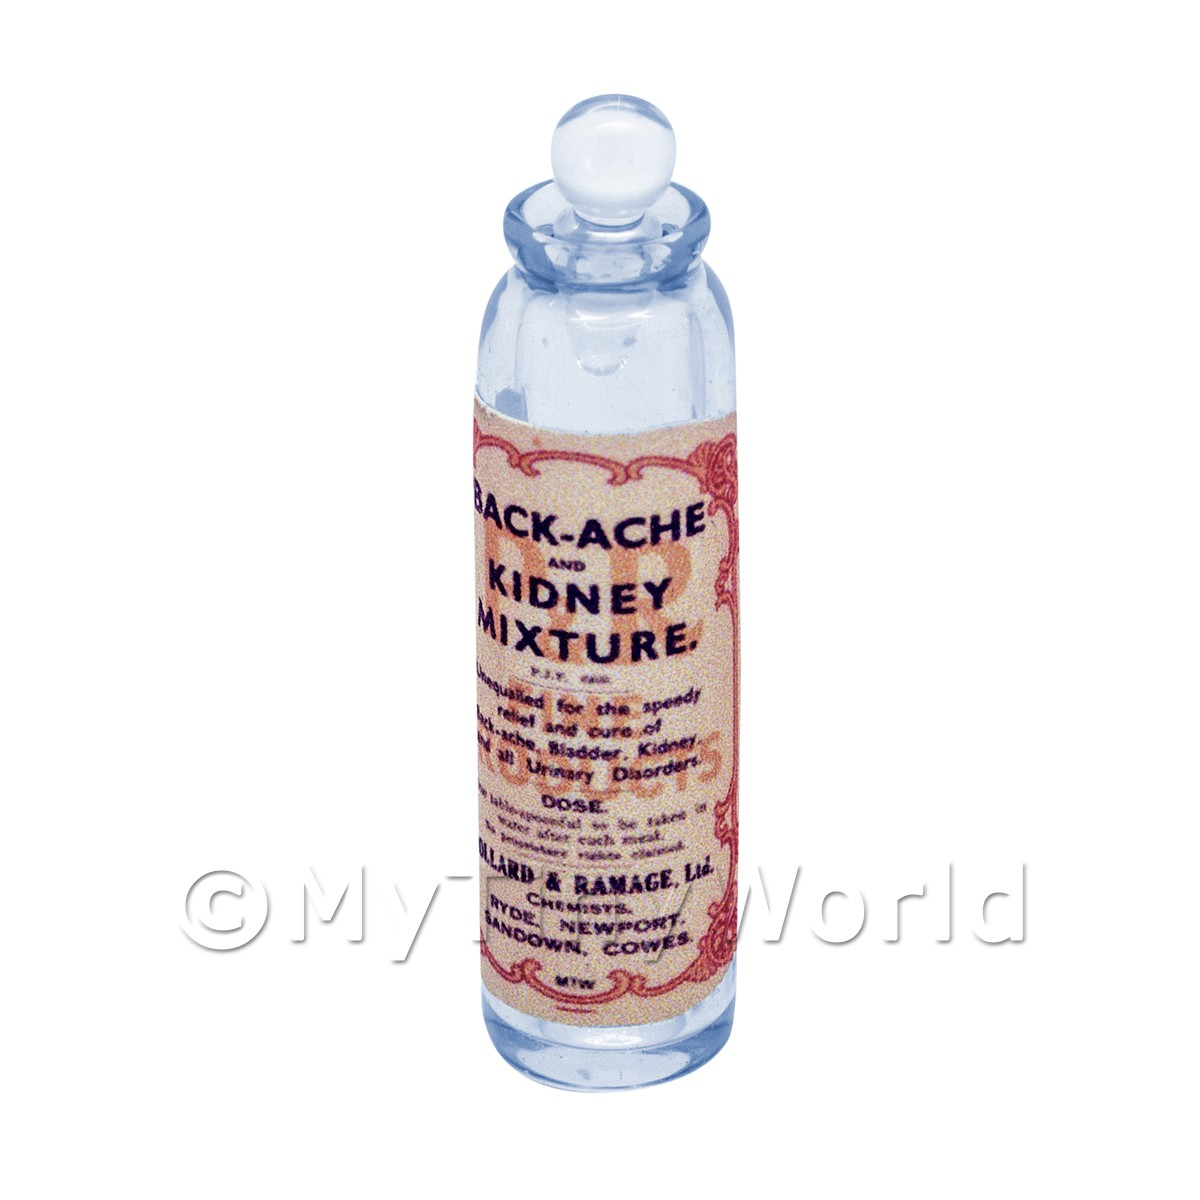 Miniature Kidney Mixture Blue Glass Apothecary Bottle